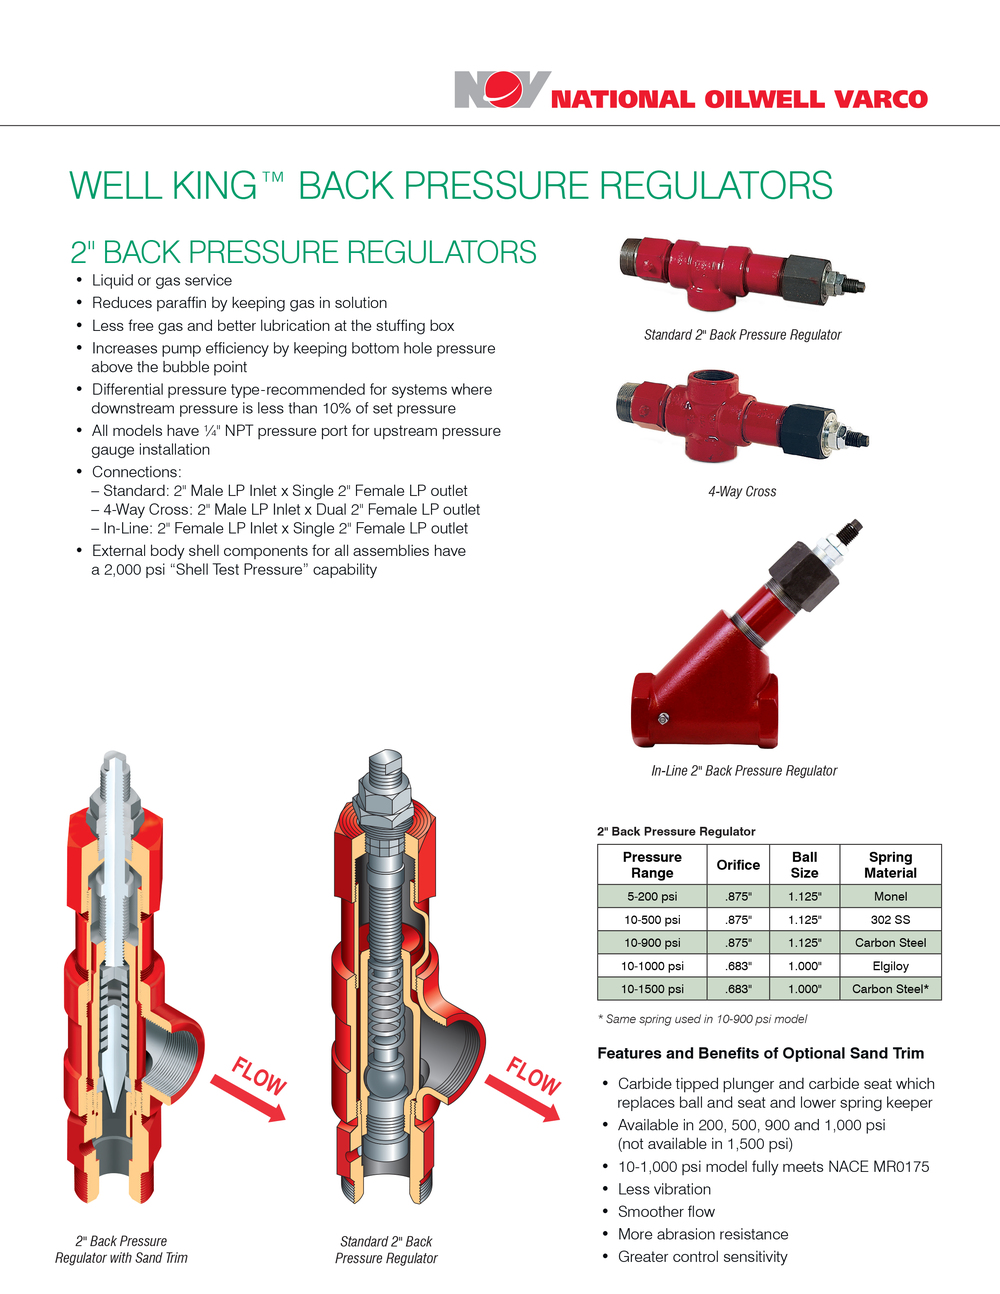 BackPressureRegulators